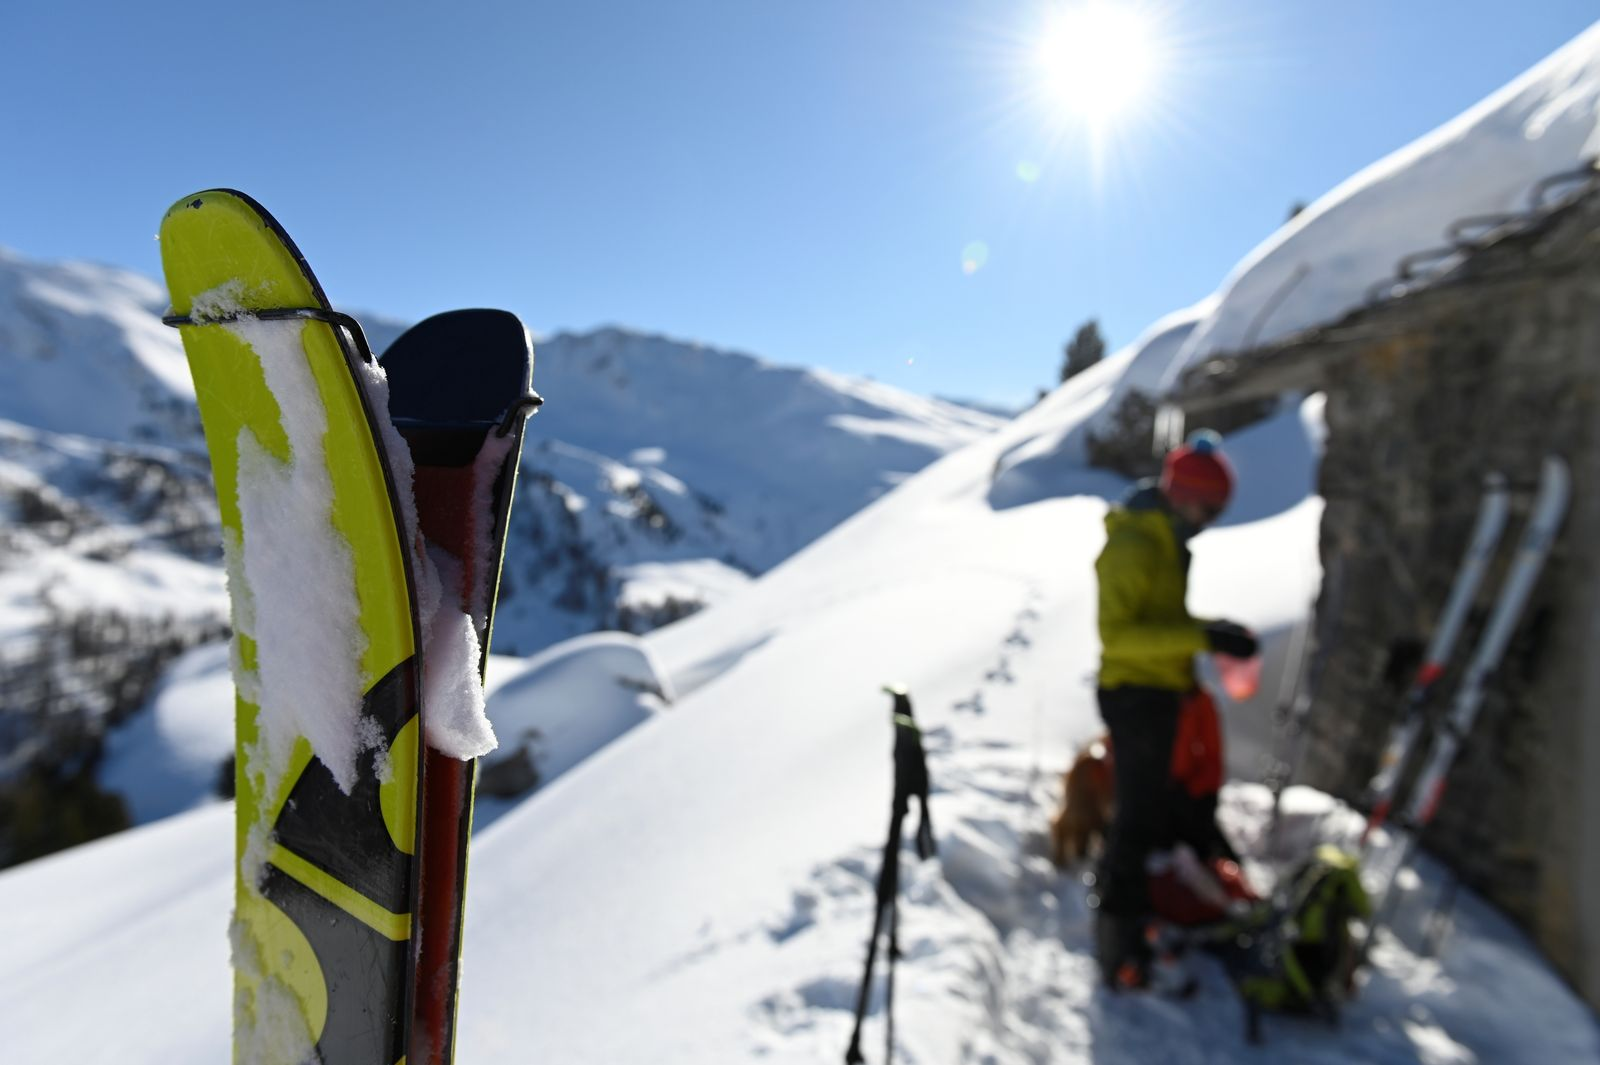 Touring skiers and winter trekkers take to the snowy mountains in the Valle di Susa while resorts remain closed due to coronavirus disease (COVID-19) restrictions, in Cesana